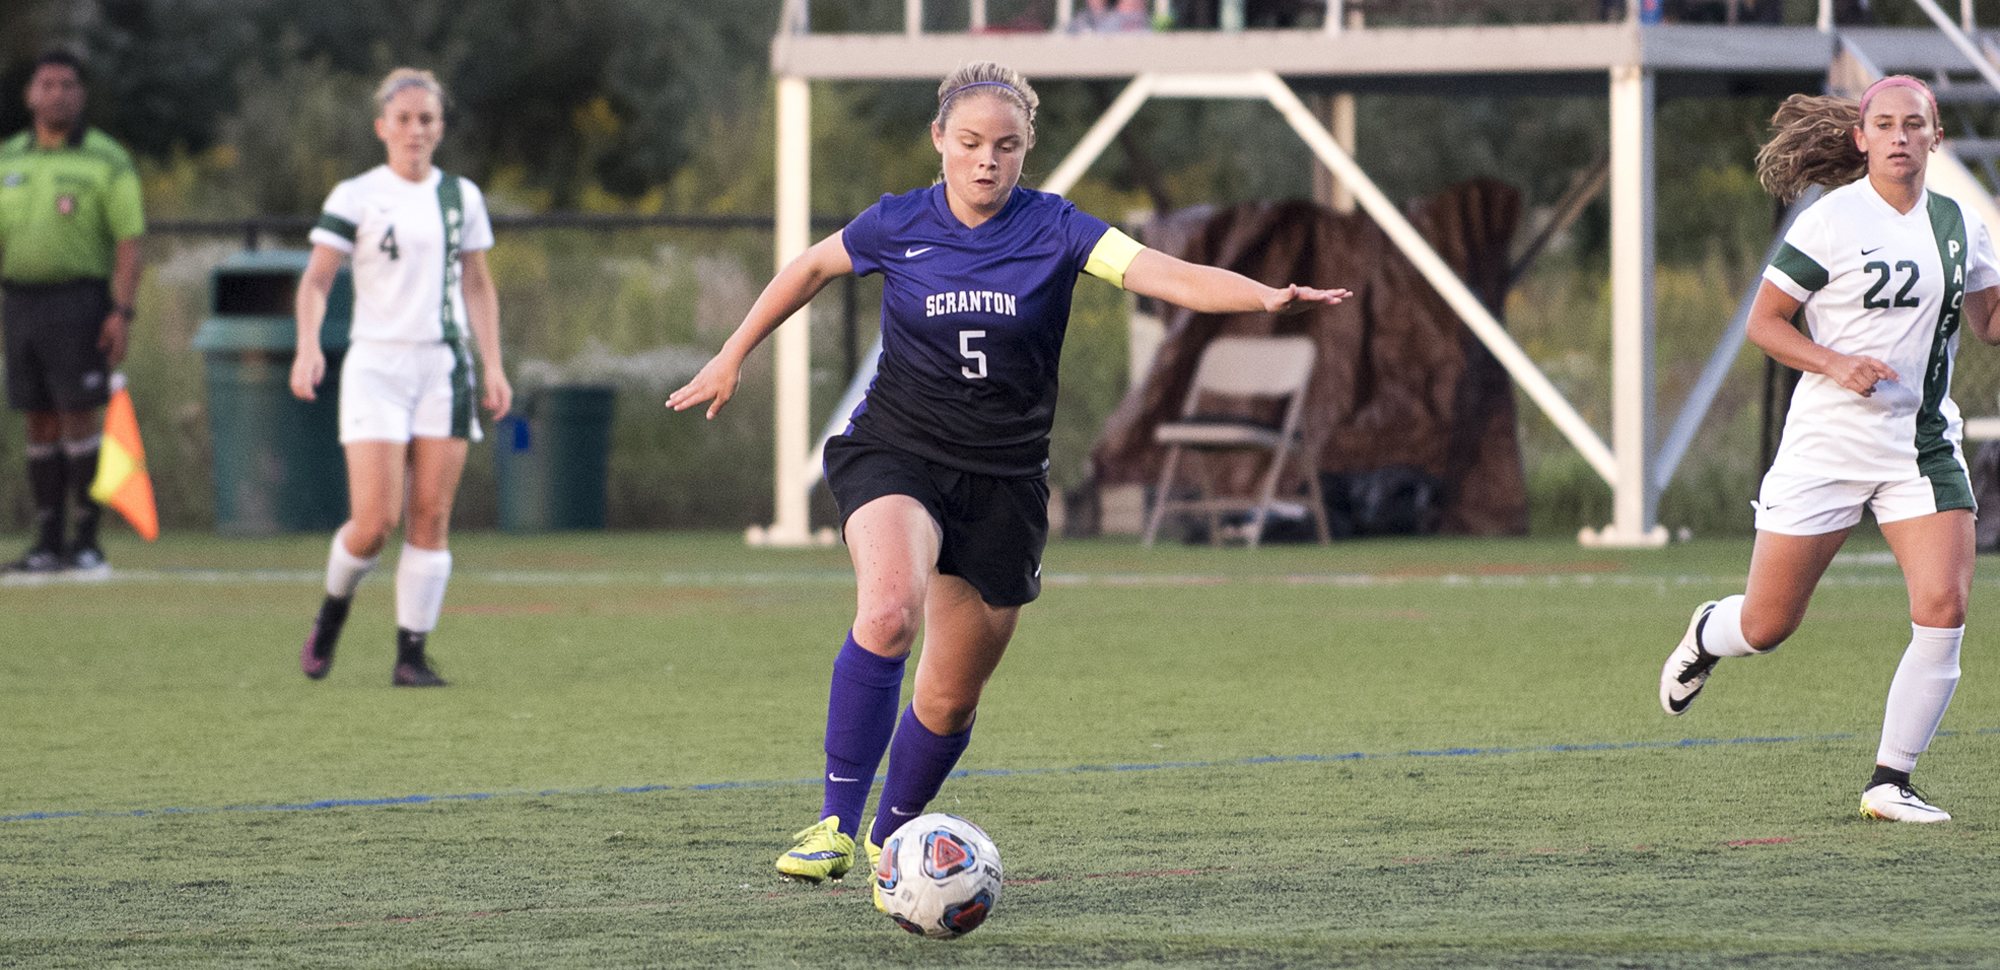 Senior Hannah DeMars scored the first goal of the 2017 season for the Royals in the 11th minute, as Scranton blanked Stockton, 3-0, on Friday at the Cougar Classic.